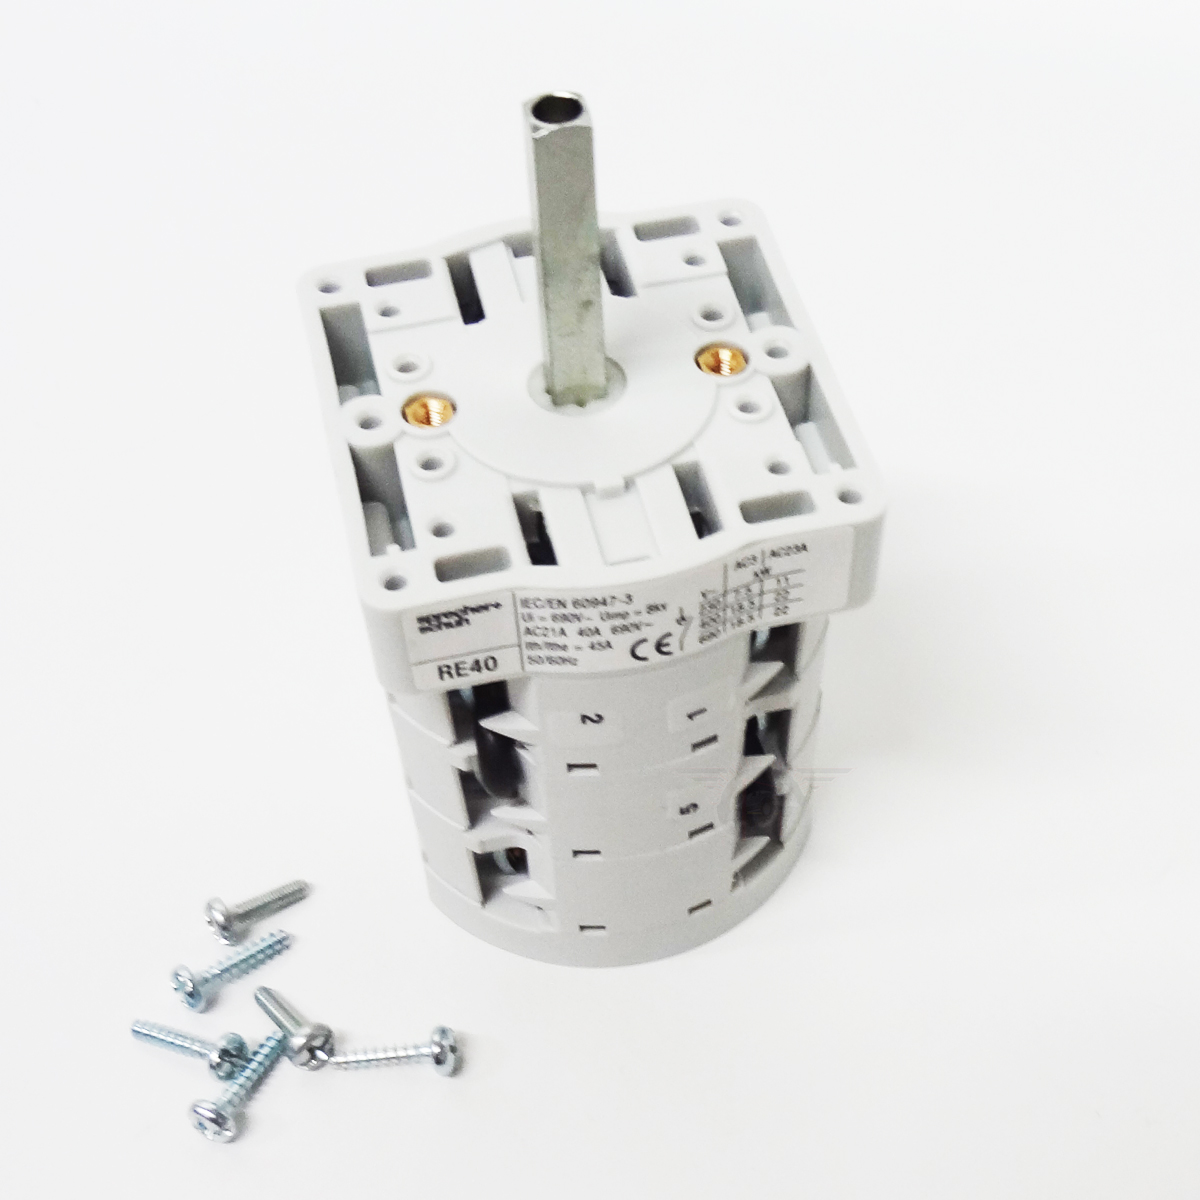 accuturn 0016433 switch turn tabel pedal switch forward resverse electric motor accuturn tire changer forward reversing switch 20016433  at fashall.co